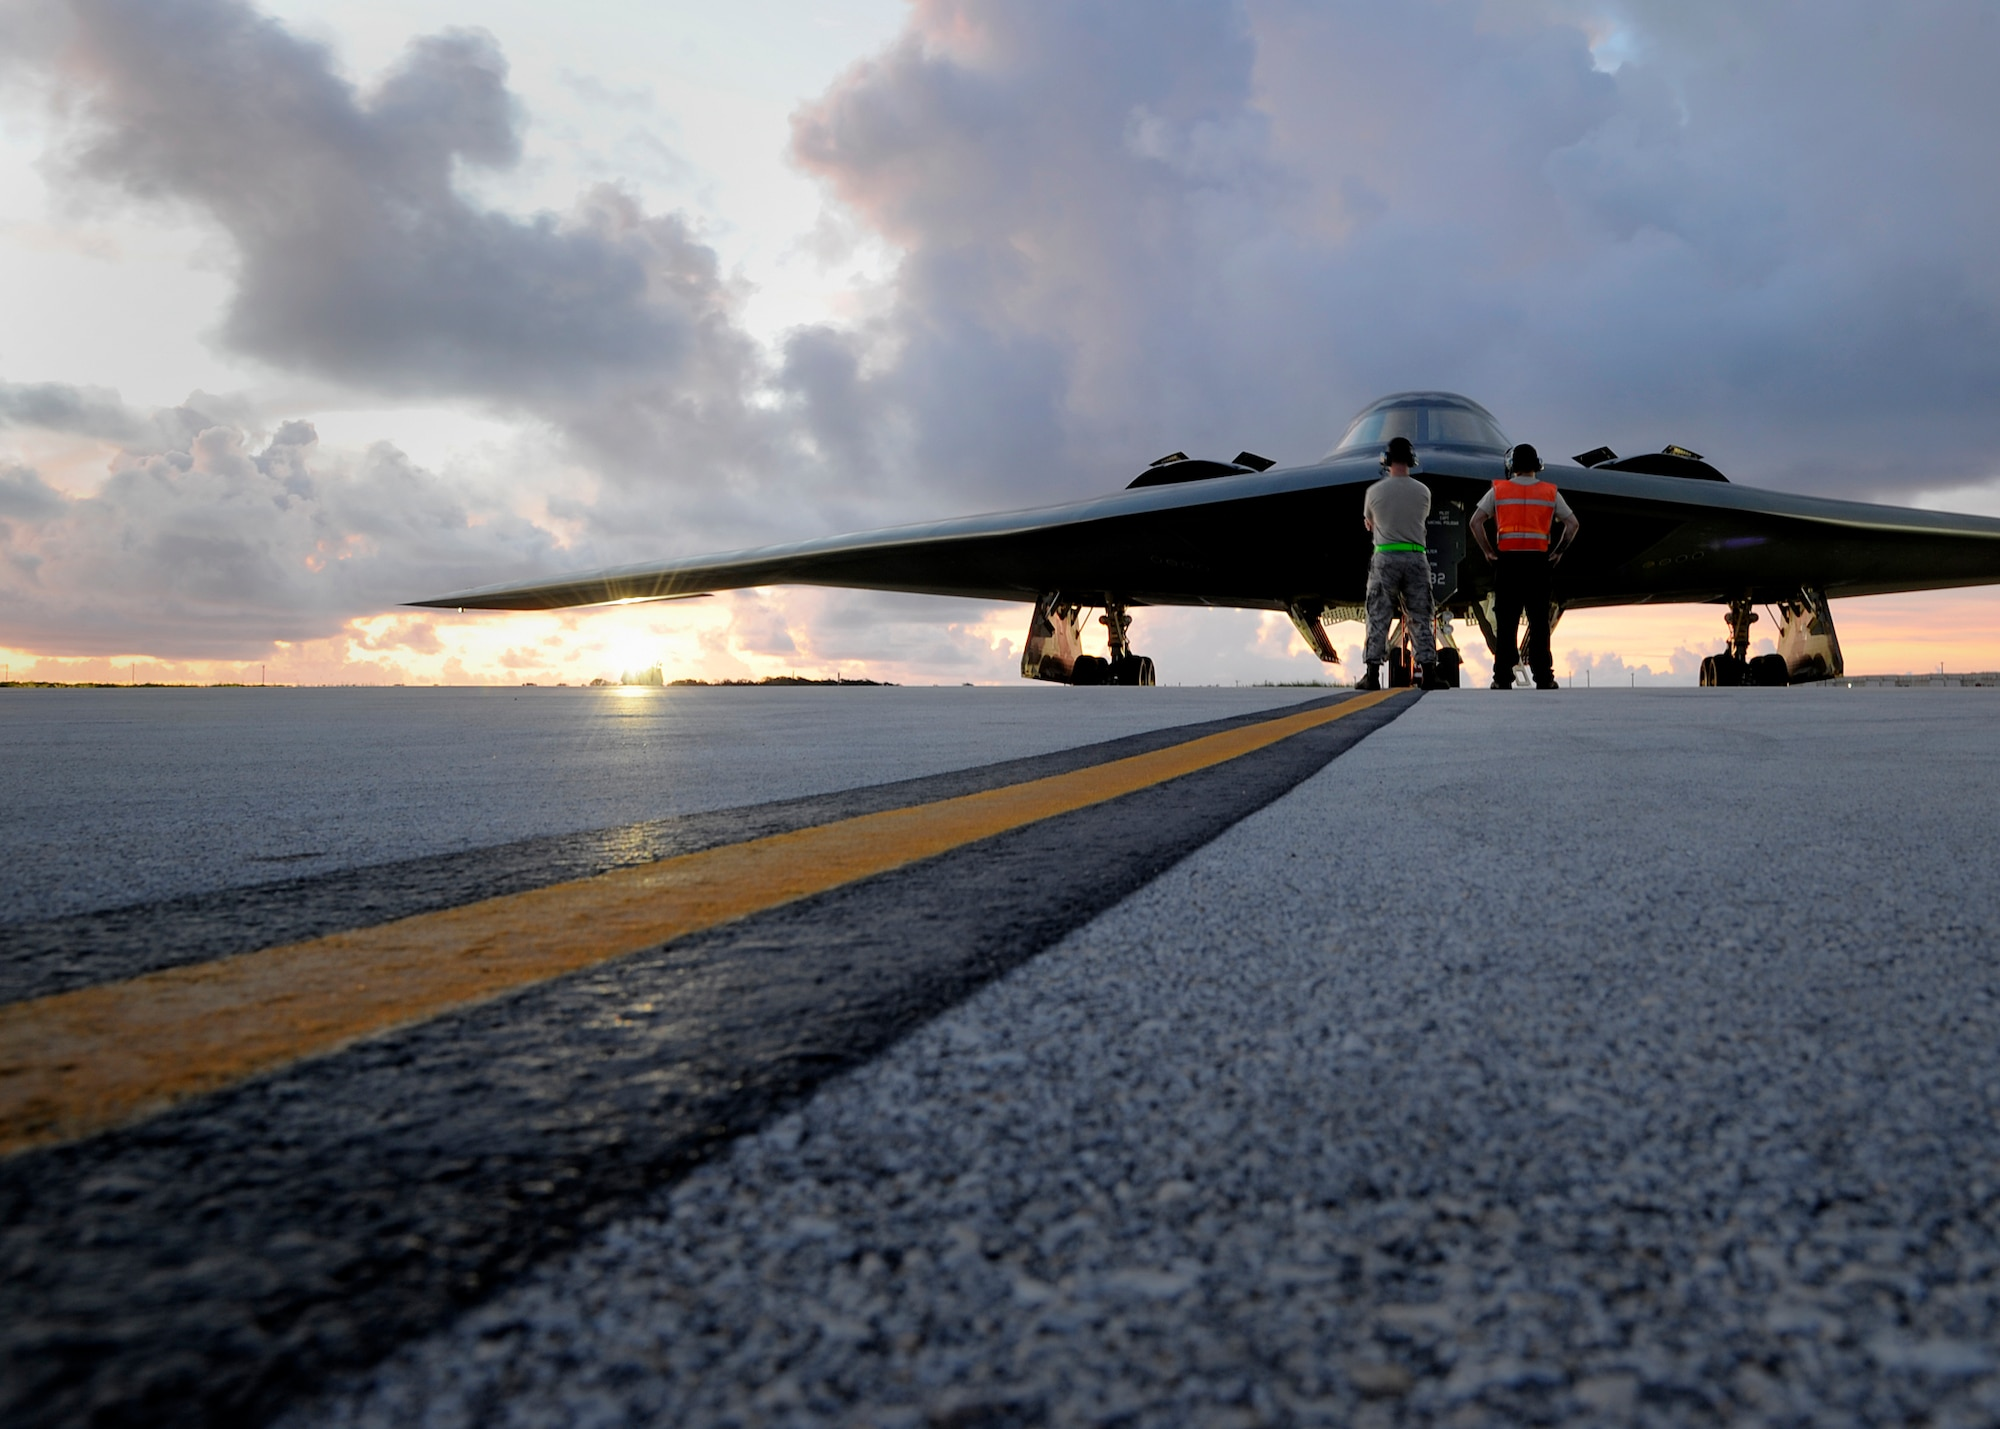 Crew chiefs assigned to the 509th Aircraft Maintenance Squadron prepare to launch a U.S. Air Force B-2 Spirit at Andersen Air Force Base, Guam, Aug. 12, 2015.  Three B-2s and about 225 Airmen from Whiteman Air Force Base, Missouri, deployed to Guam to conduct familiarization training activities in the Indo-Asia-Pacific region. (U.S. Air Force photo by Senior Airman Joseph A. Pagán Jr./Released)